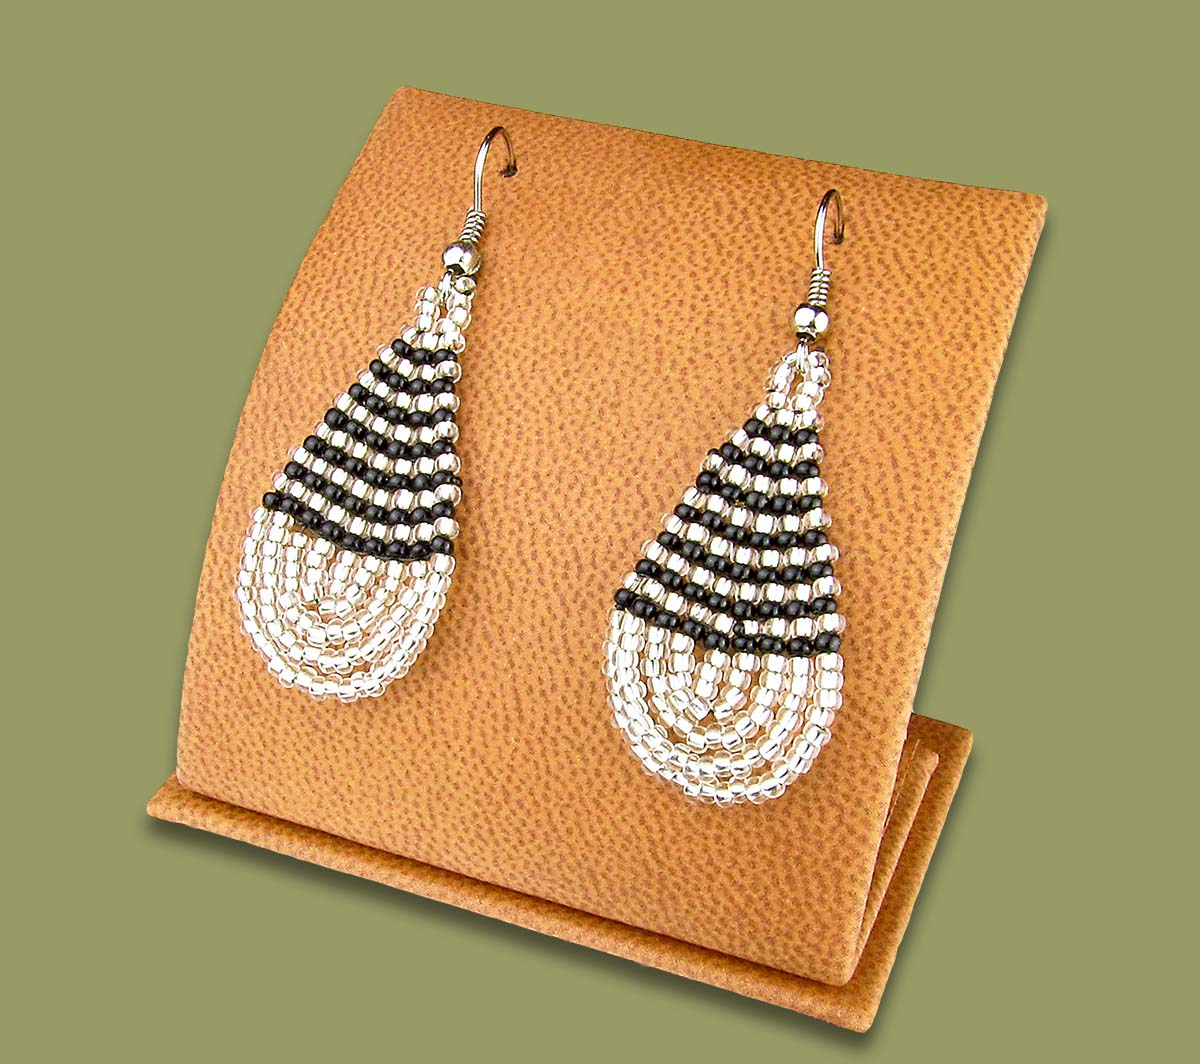 Small Beaded Ear Rings Tear Drop Silver Black